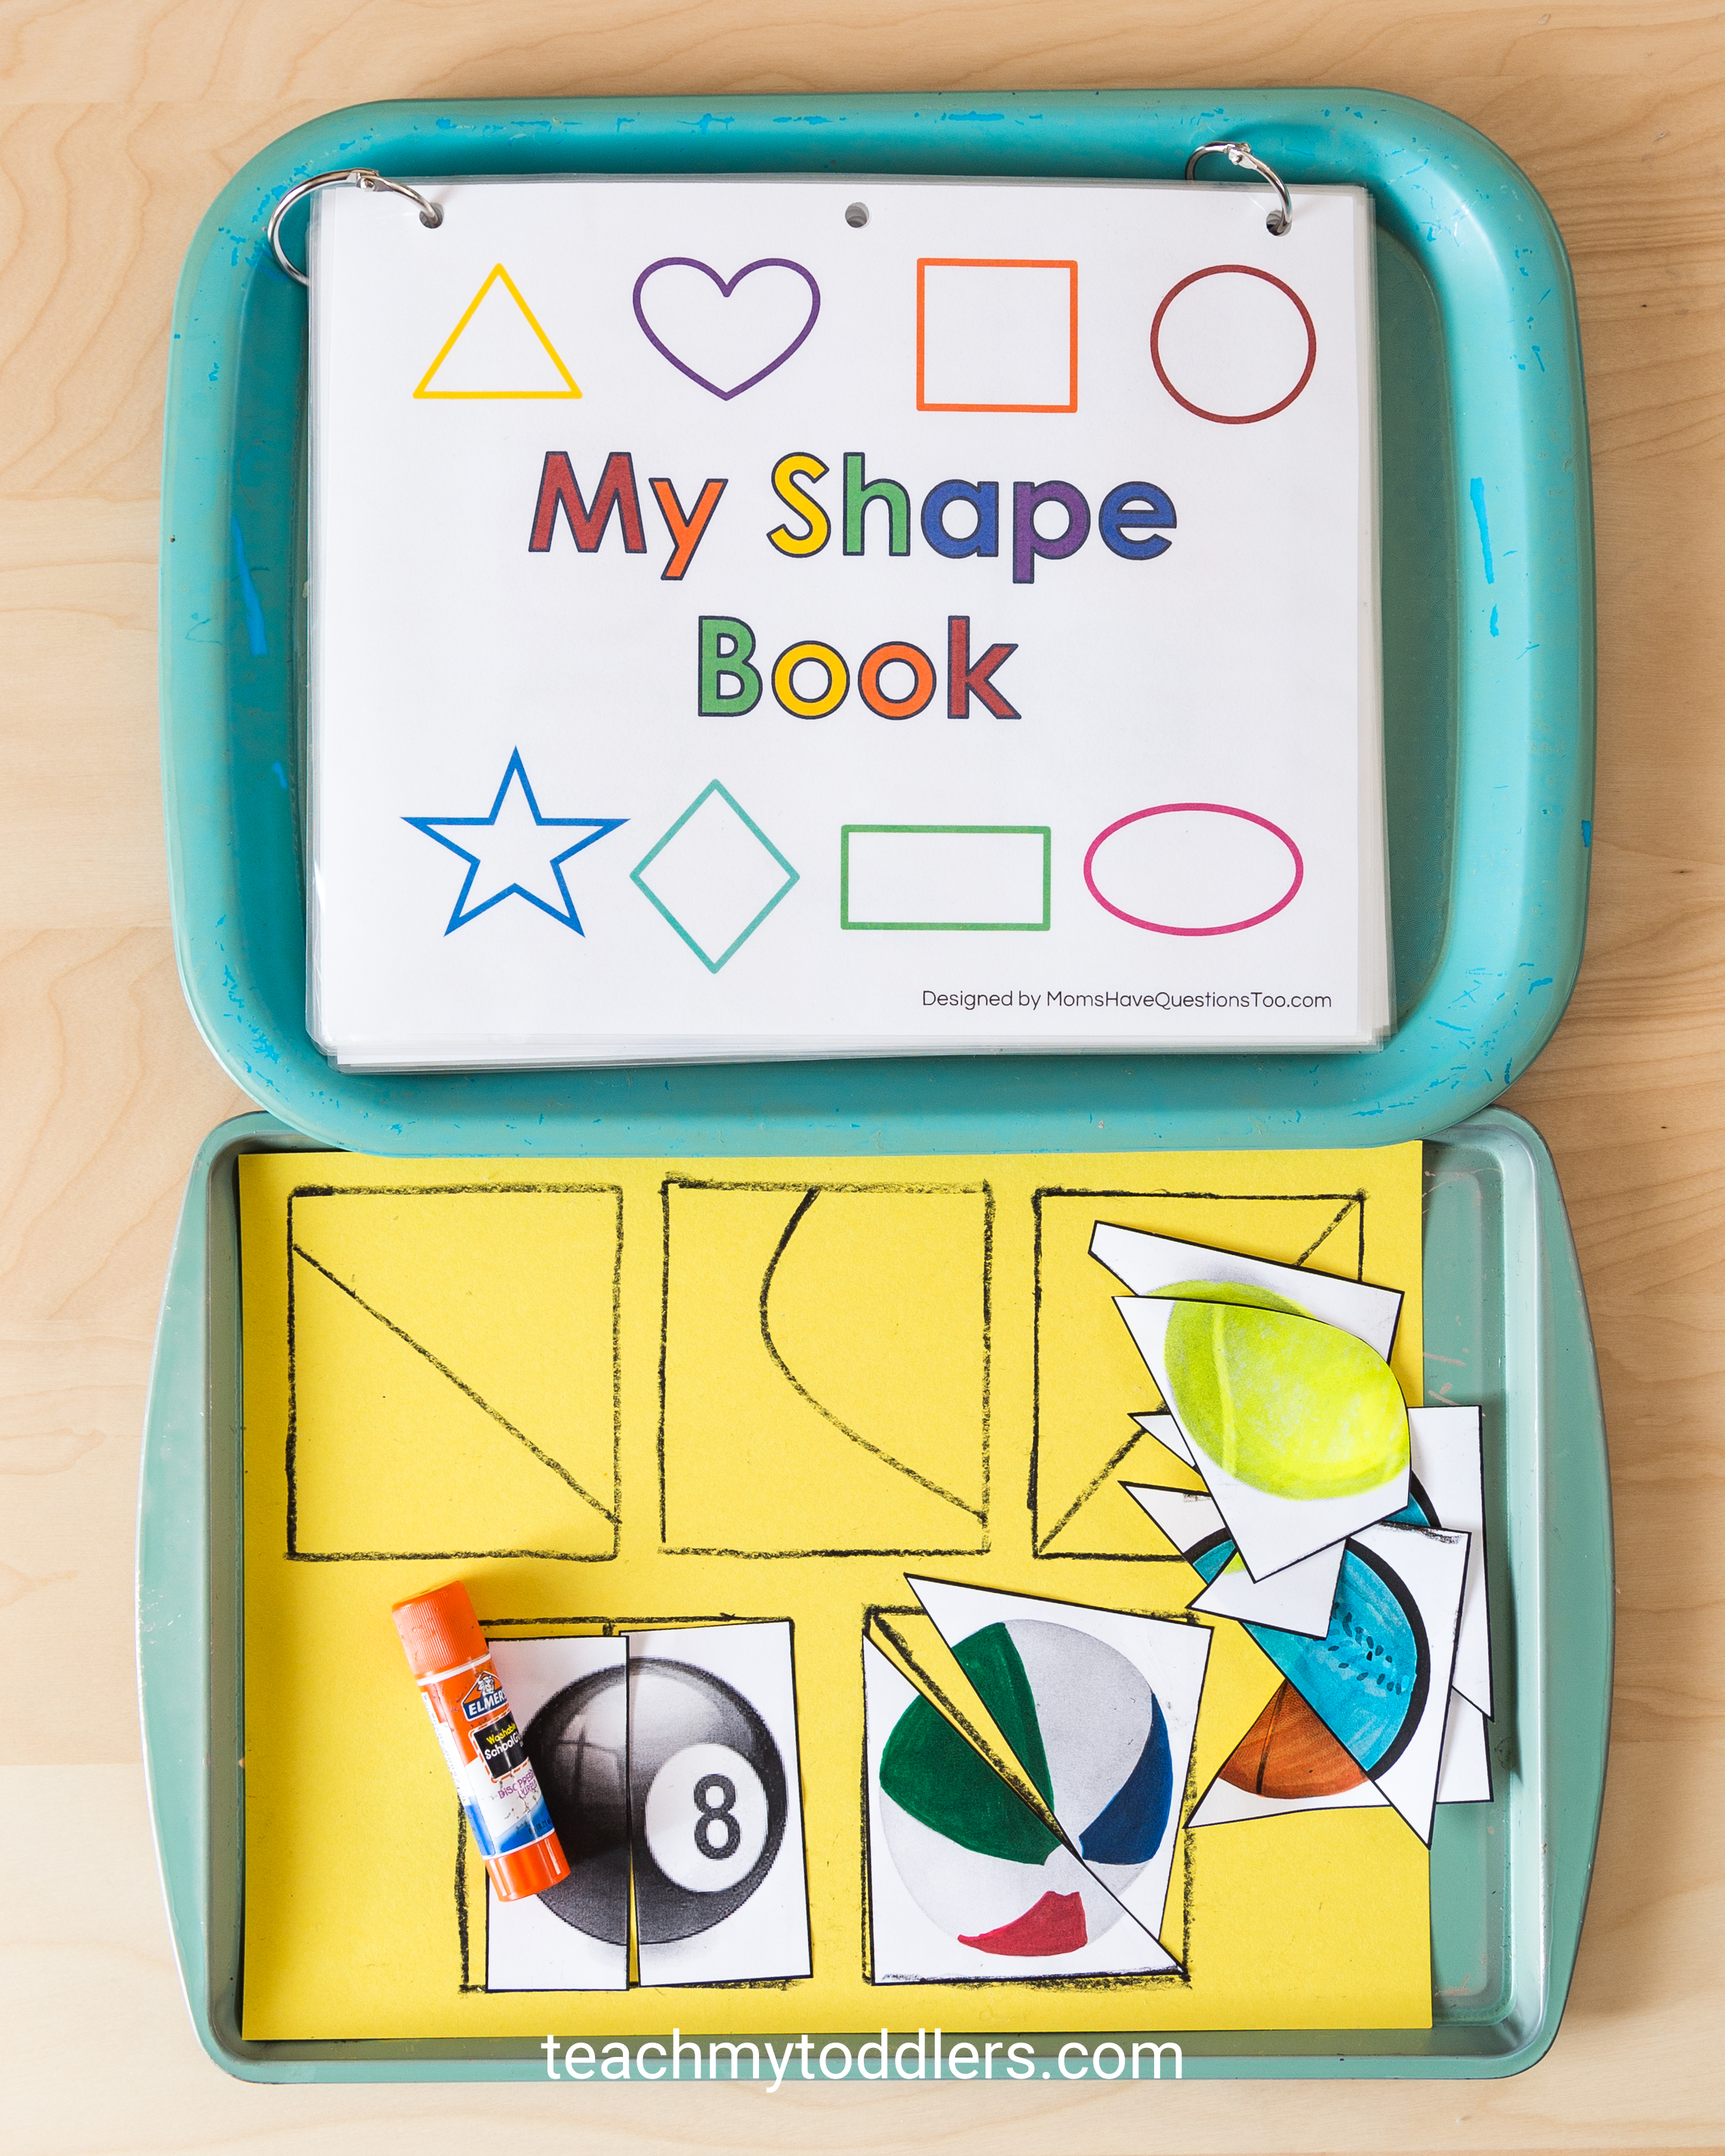 Use these fun circle toddler trays to teach your toddlers shapes